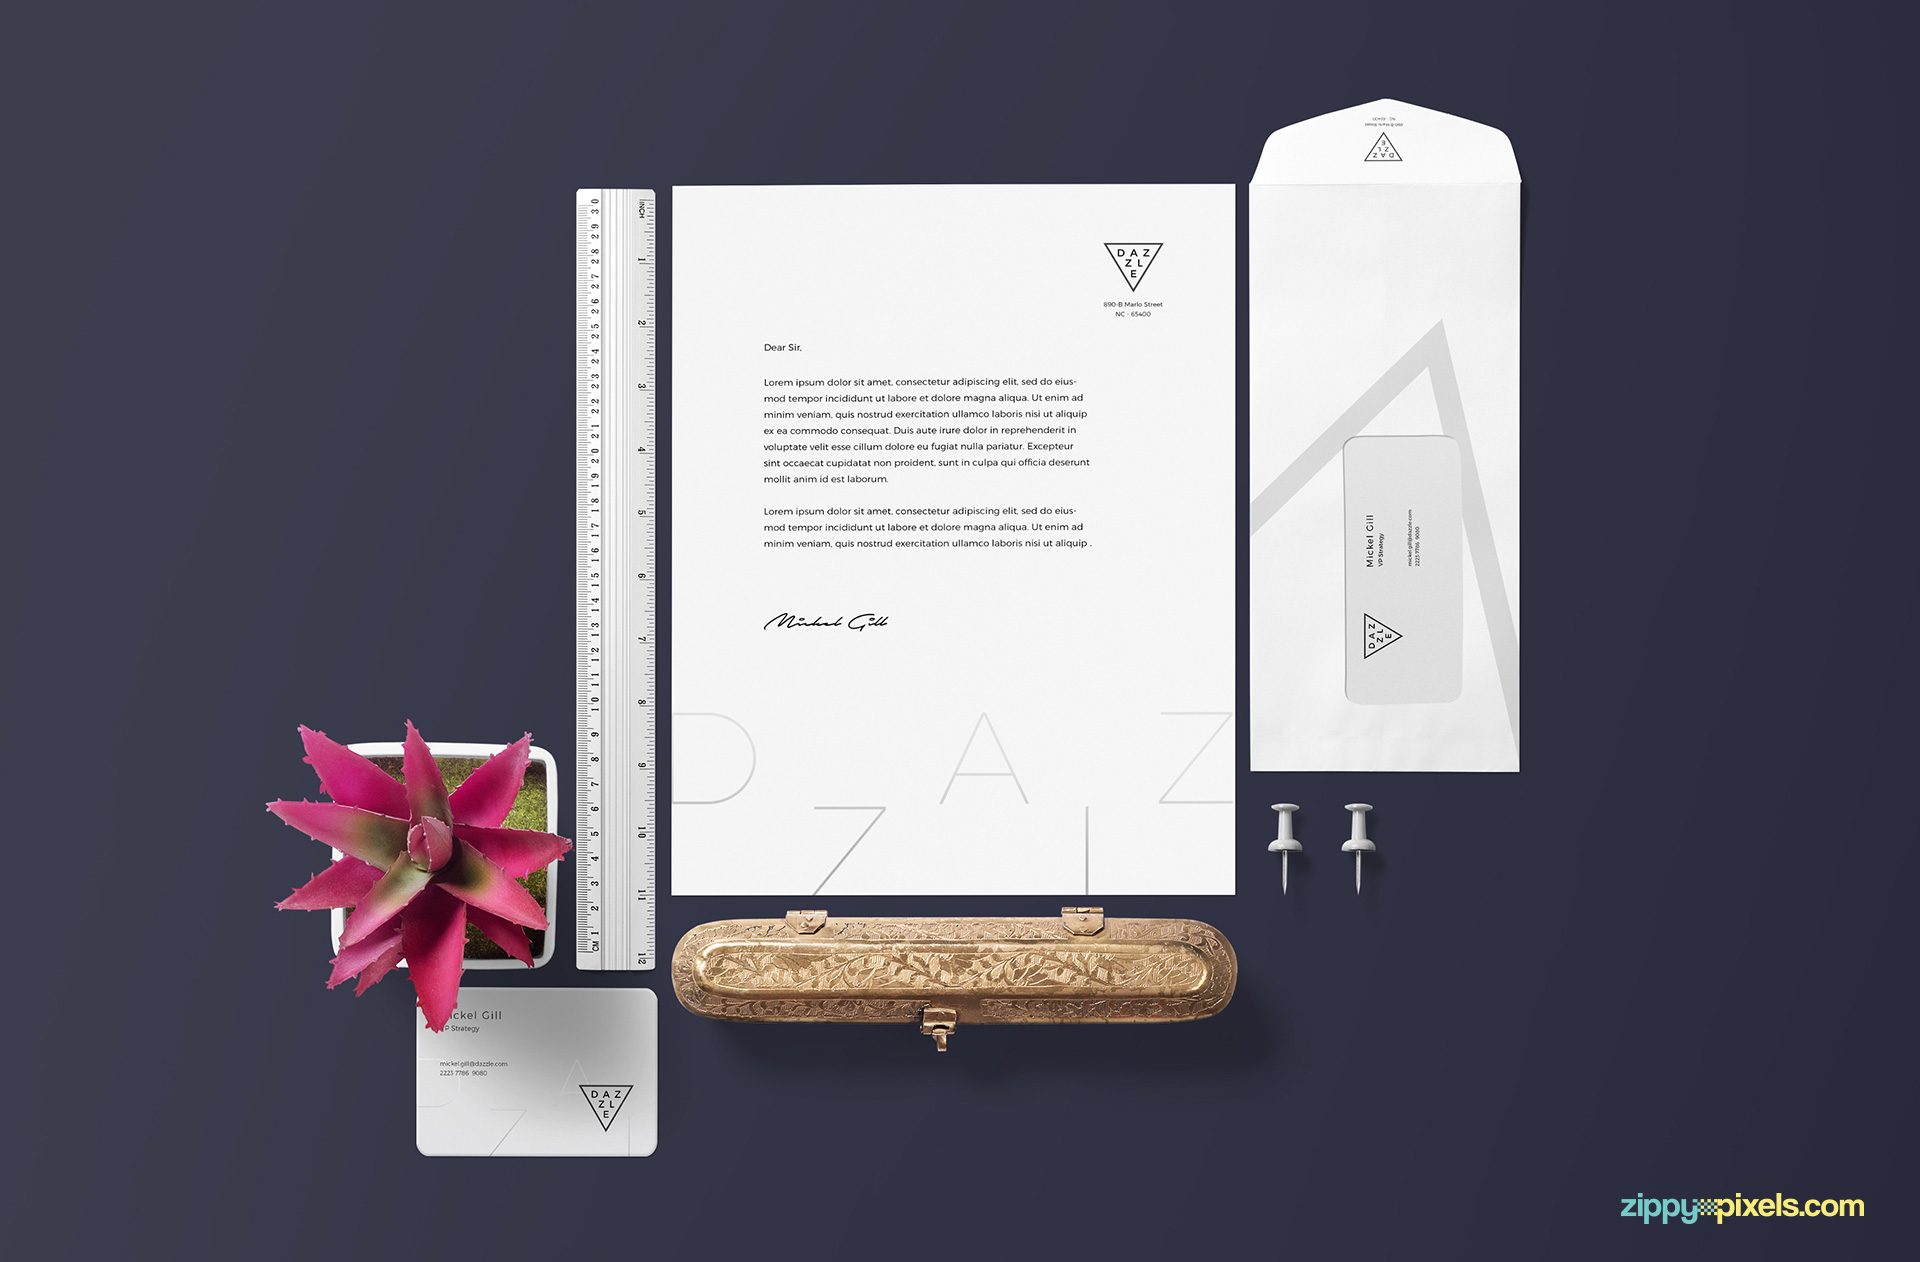 mockup-scene-paper-antique-case